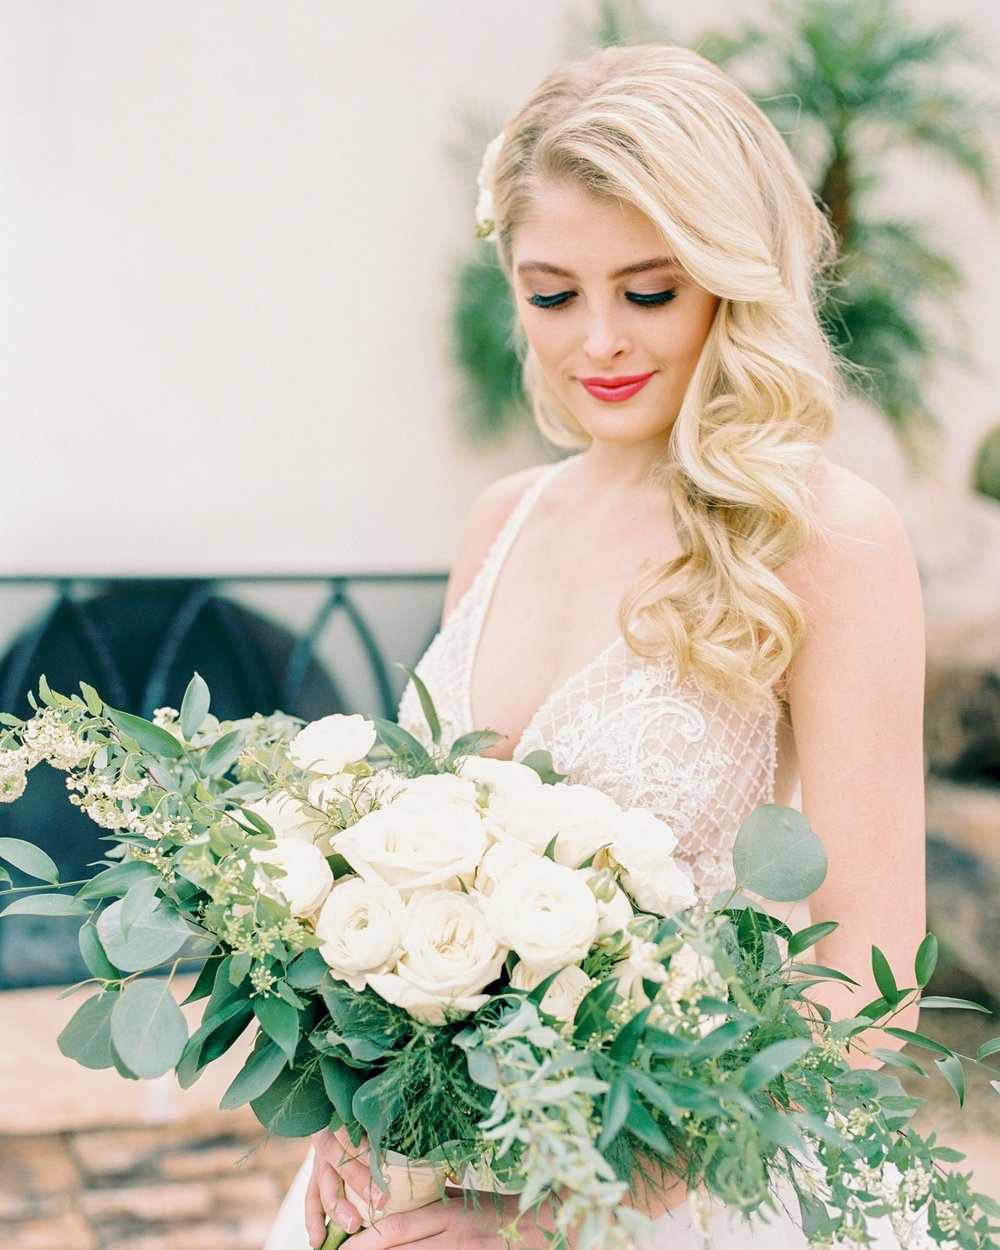 bridal4thewin_phx_makeup_hair8.jpg